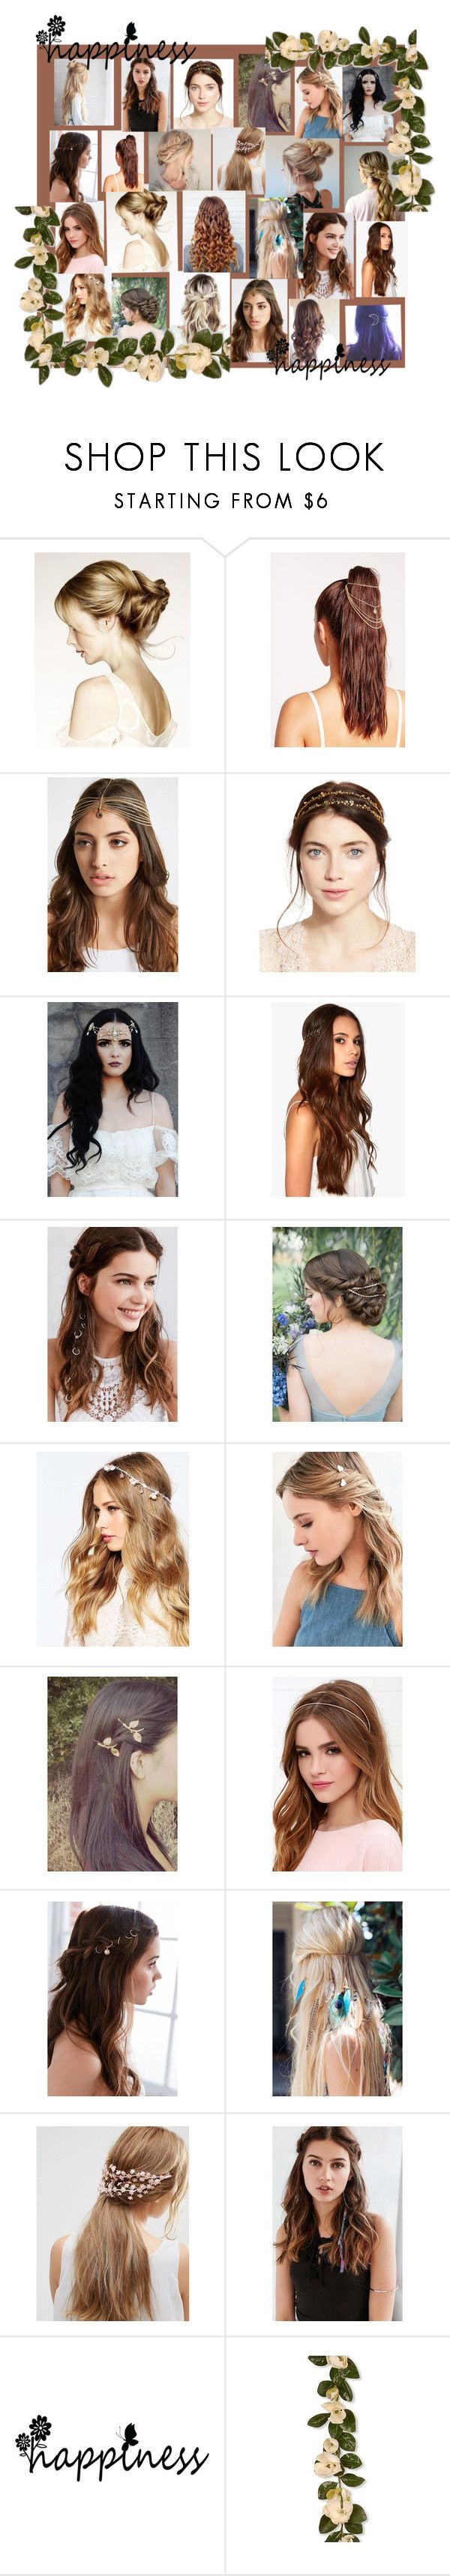 """""""Hairstyles"""" by farrukh-rabia ❤ liked on Polyvore featuring Missguided, BCBGeneration, Jennifer Behr, REGALROSE, ASOS, Urban Outfitters, LULUS and National Tree Company"""